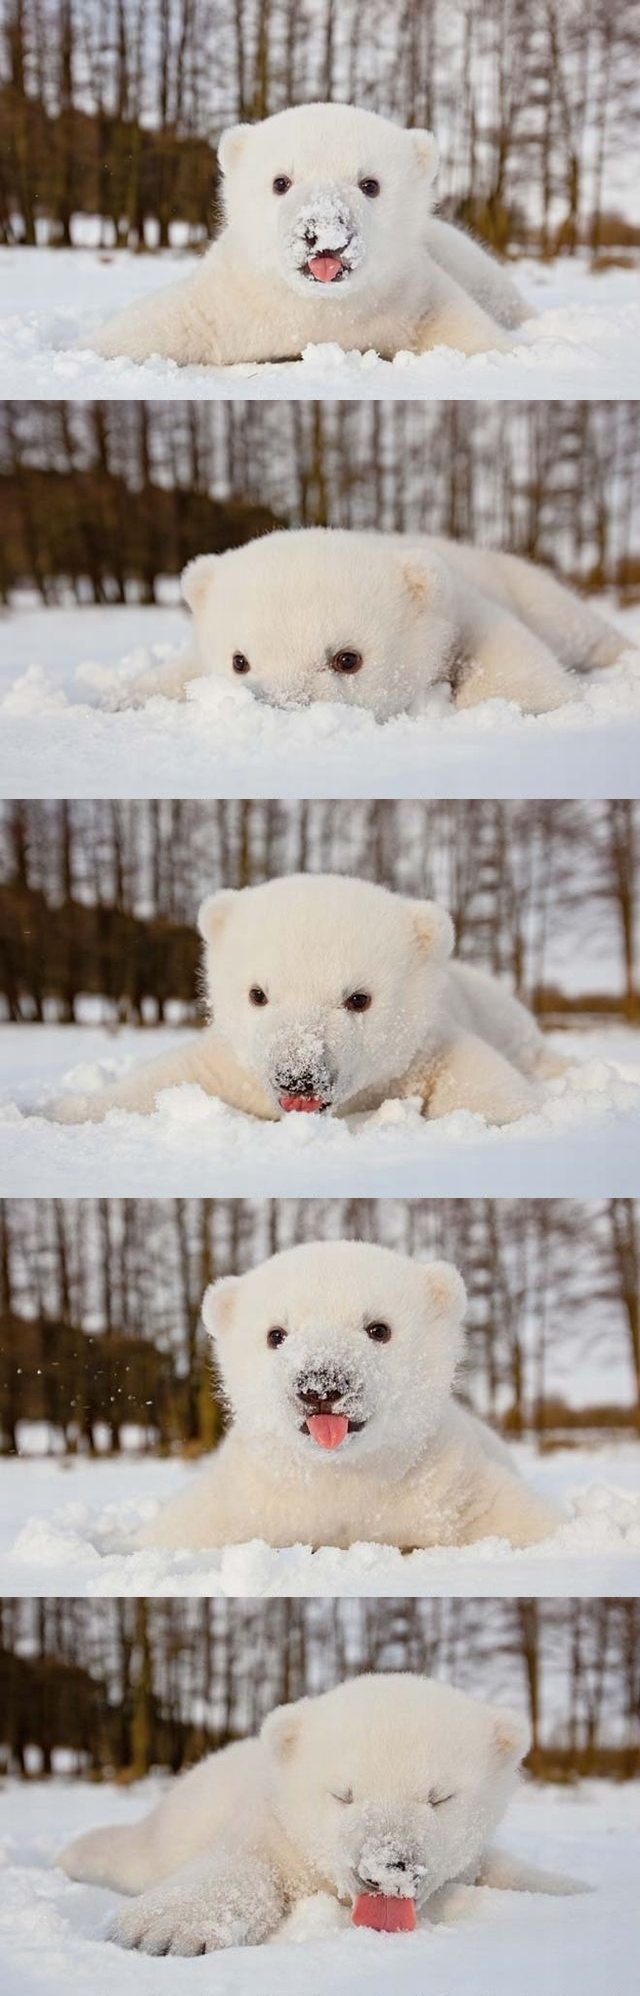 Baby Polar Bear series